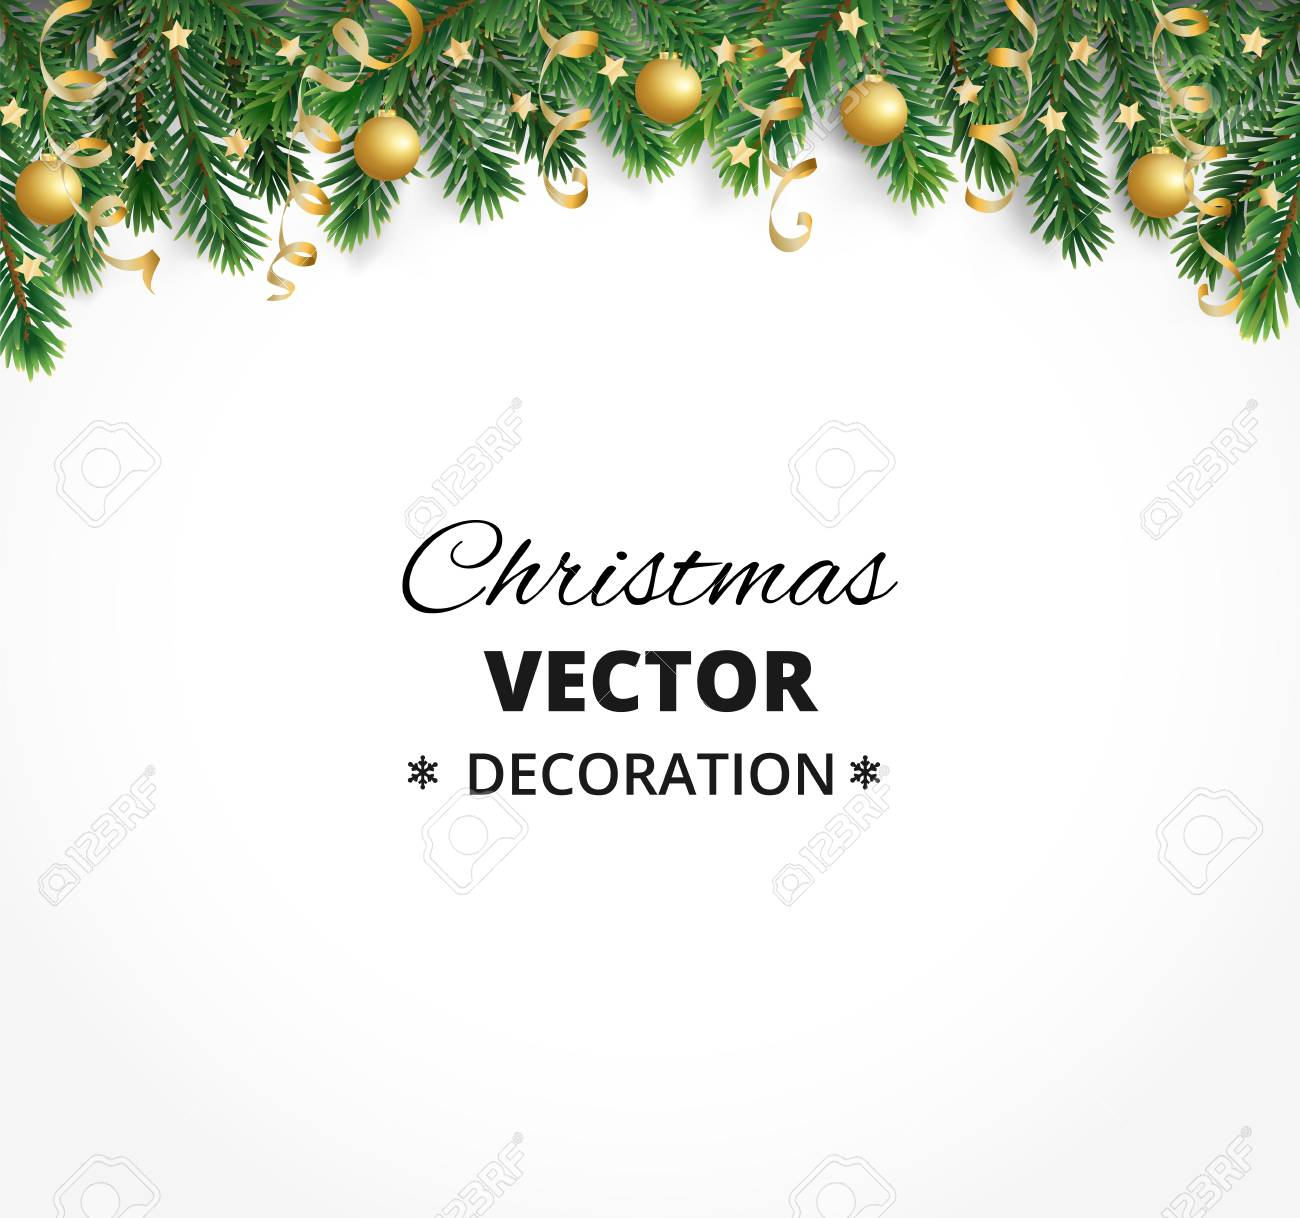 Winter holiday background. Border with Christmas tree branches. Garland, frame with hanging baubles, streamers - 90605319